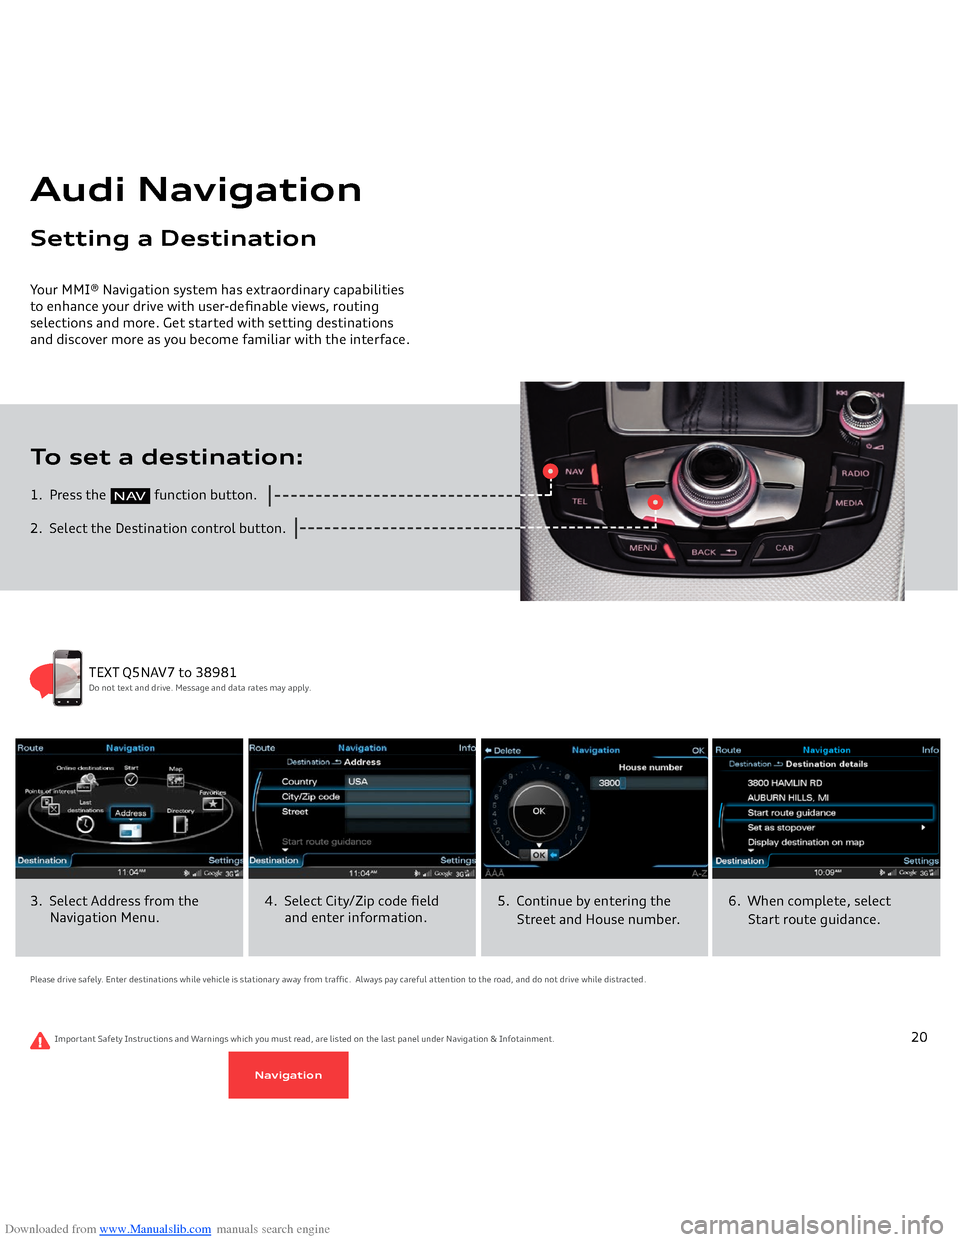 AUDI Q5 2014 8R / 1.G Getting To Know Downloaded from www.Manualslib.com manuals search engine 1.  Press the                function button. 2.  Select the Destination control button.To set a destination:Your MMI® Navigation system has e